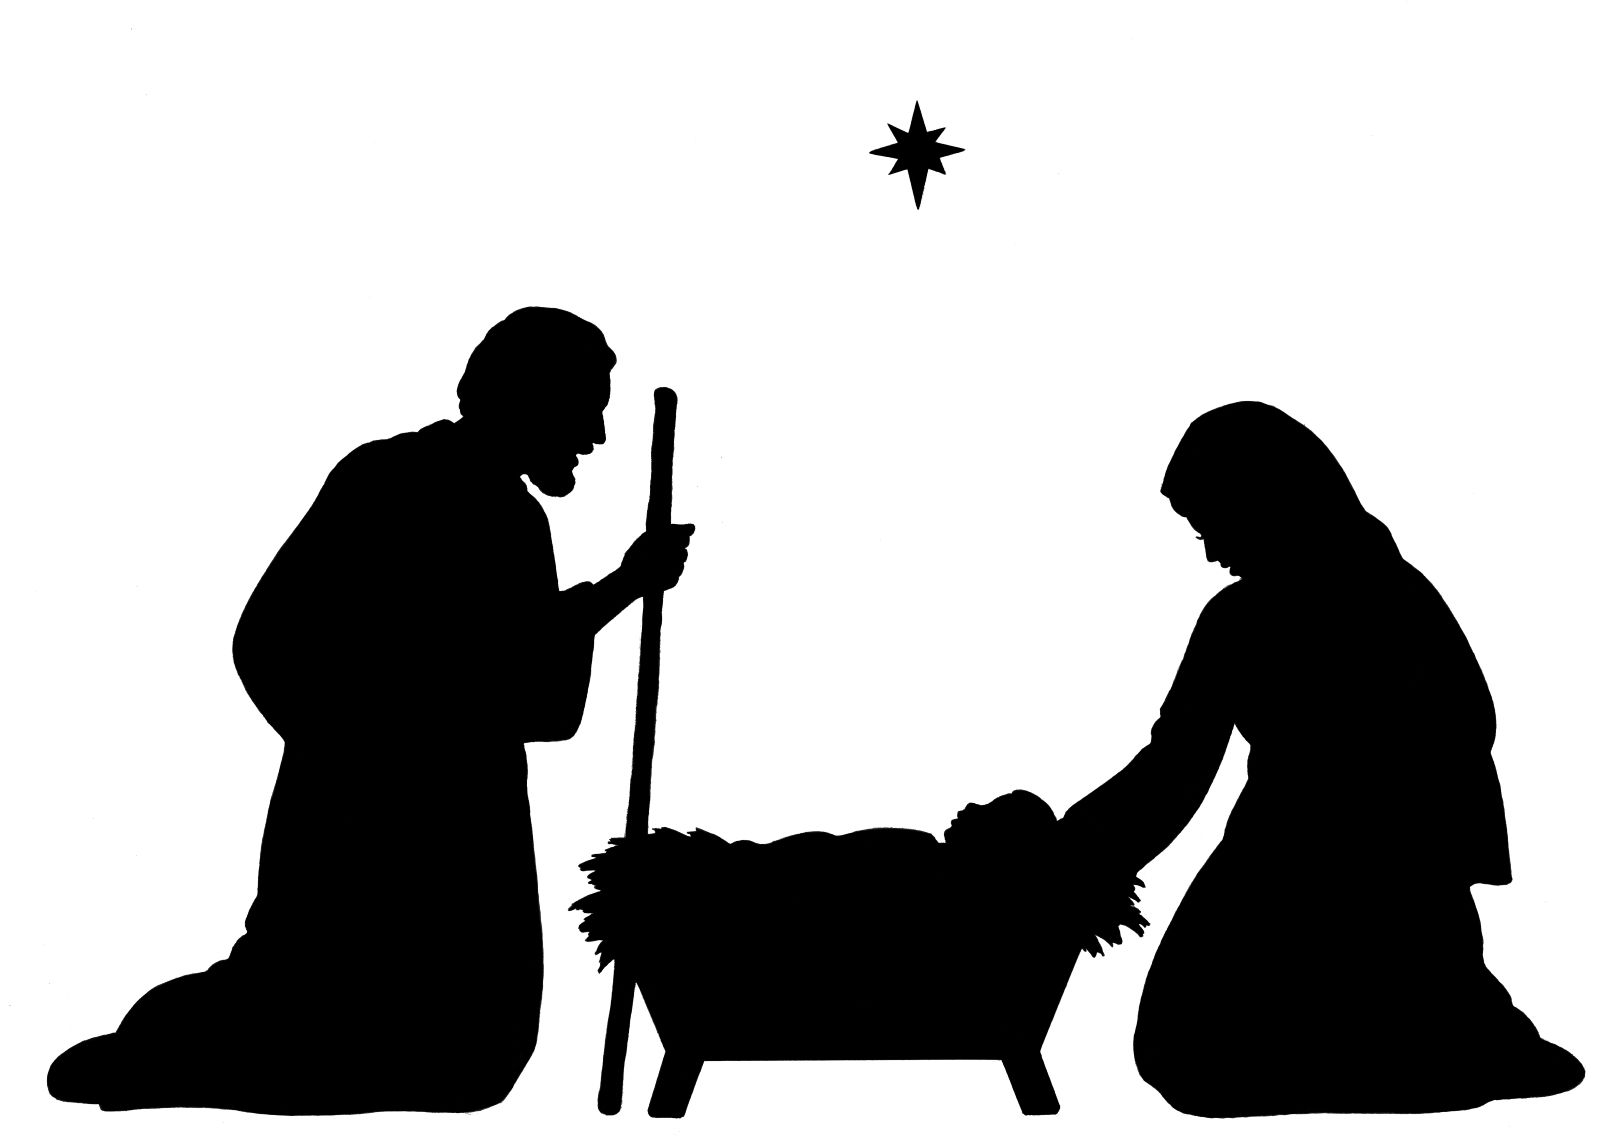 baby jesus silhouette nativity silhouette clip art black rh pinterest com nativity clip art borders nativity clip art silhouette